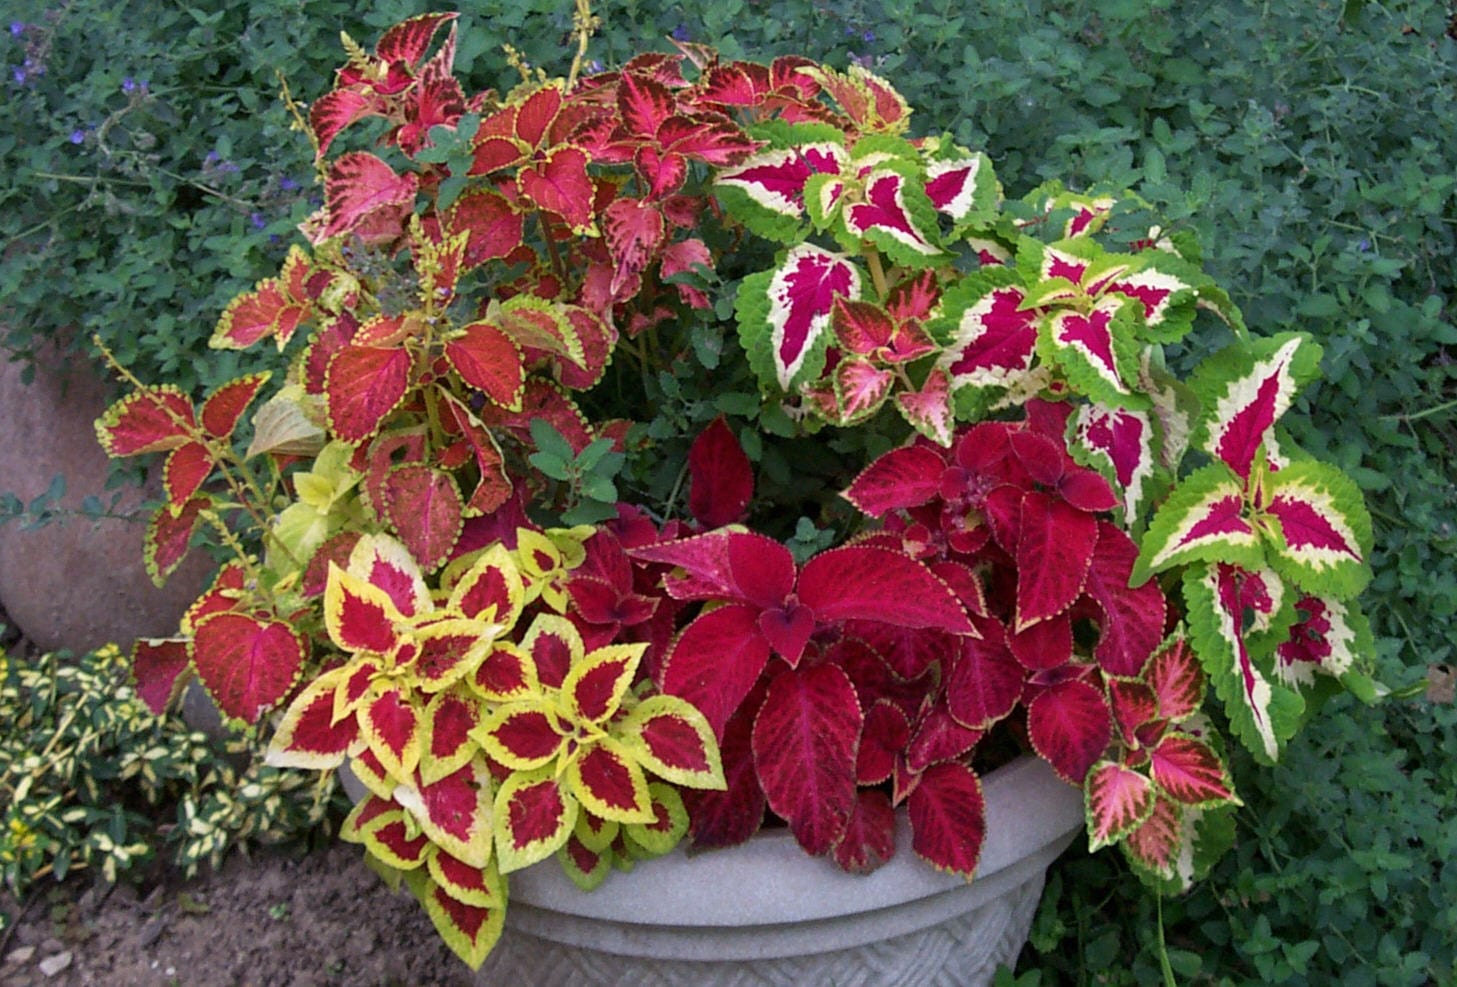 How to Grow the Coleus Plant | Coleus Plant Care